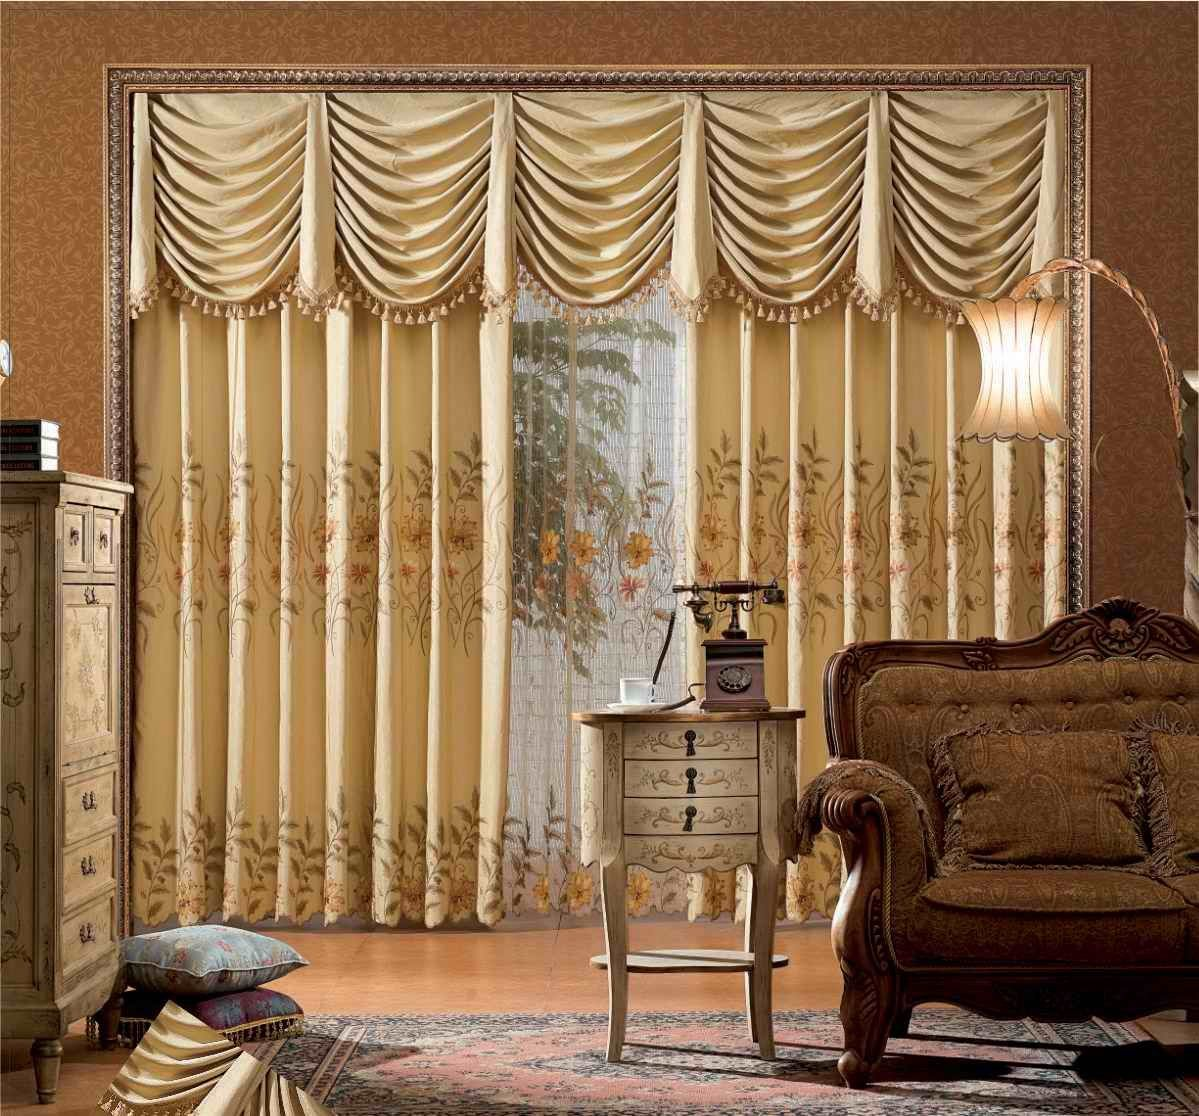 Living Room Curtains Designs Fair Make Modern Living Room Curtains  Httphighlifestylewp Design Decoration